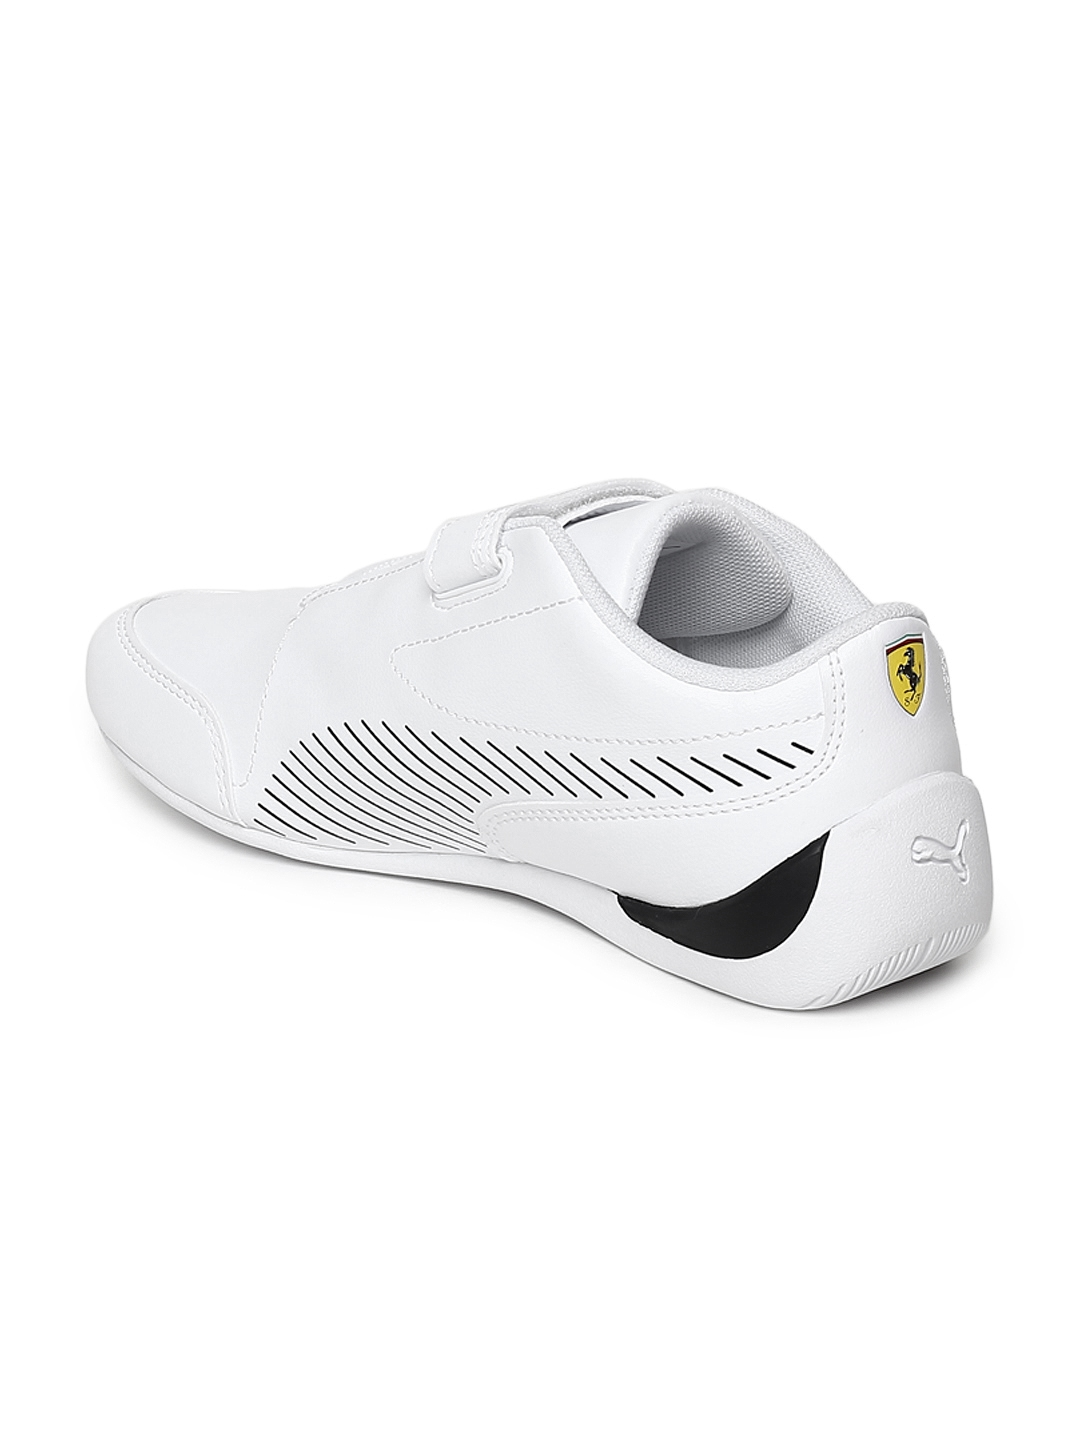 7b0086247da Buy Puma Kids White SF Drift Cat 7S Ultra V PS Sneakers - Casual ...